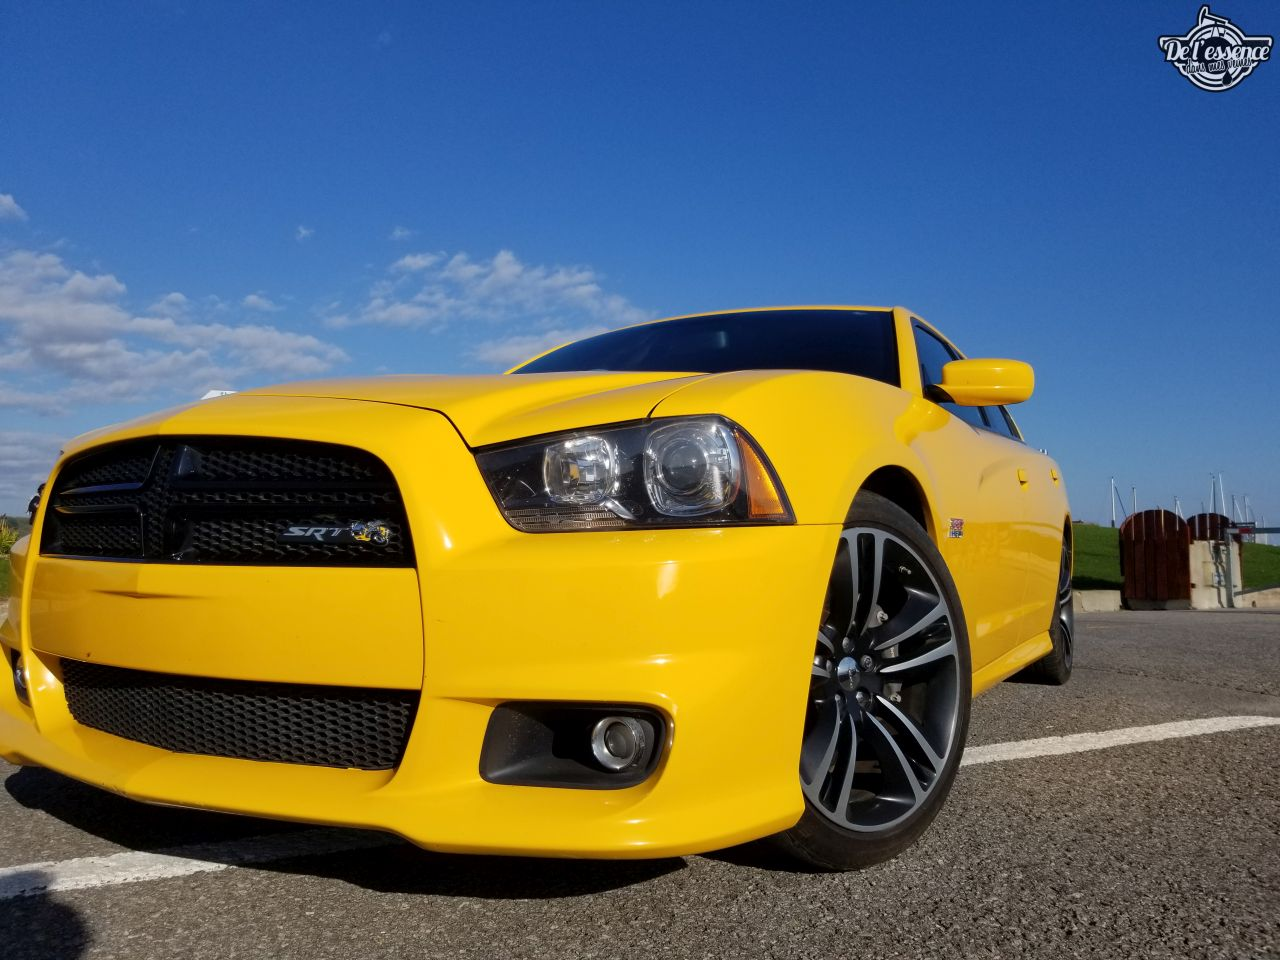 Dodge Charger Super Bee 2012 - Elle fait bizzz-bizzz... Vroap ! 8